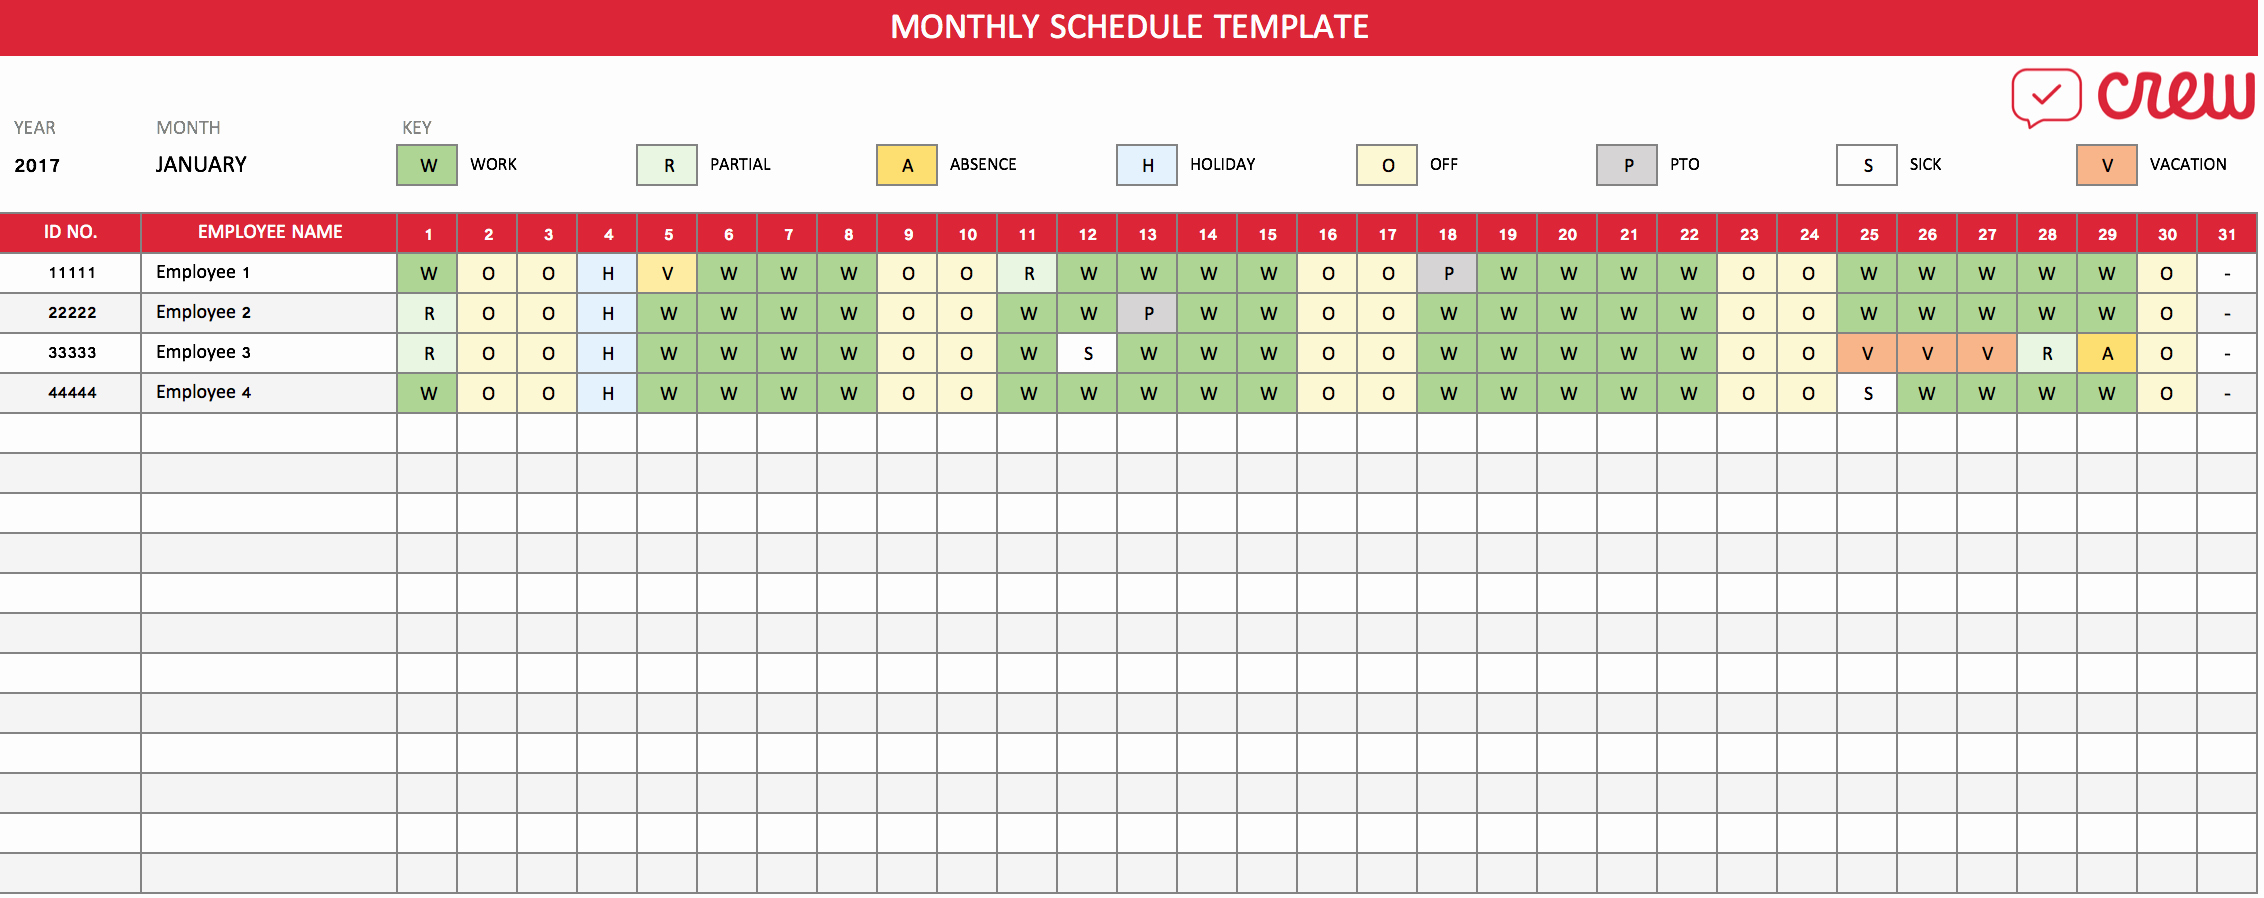 Free Monthly Work Schedule Template Elegant Free Monthly Work Schedule Template Crew